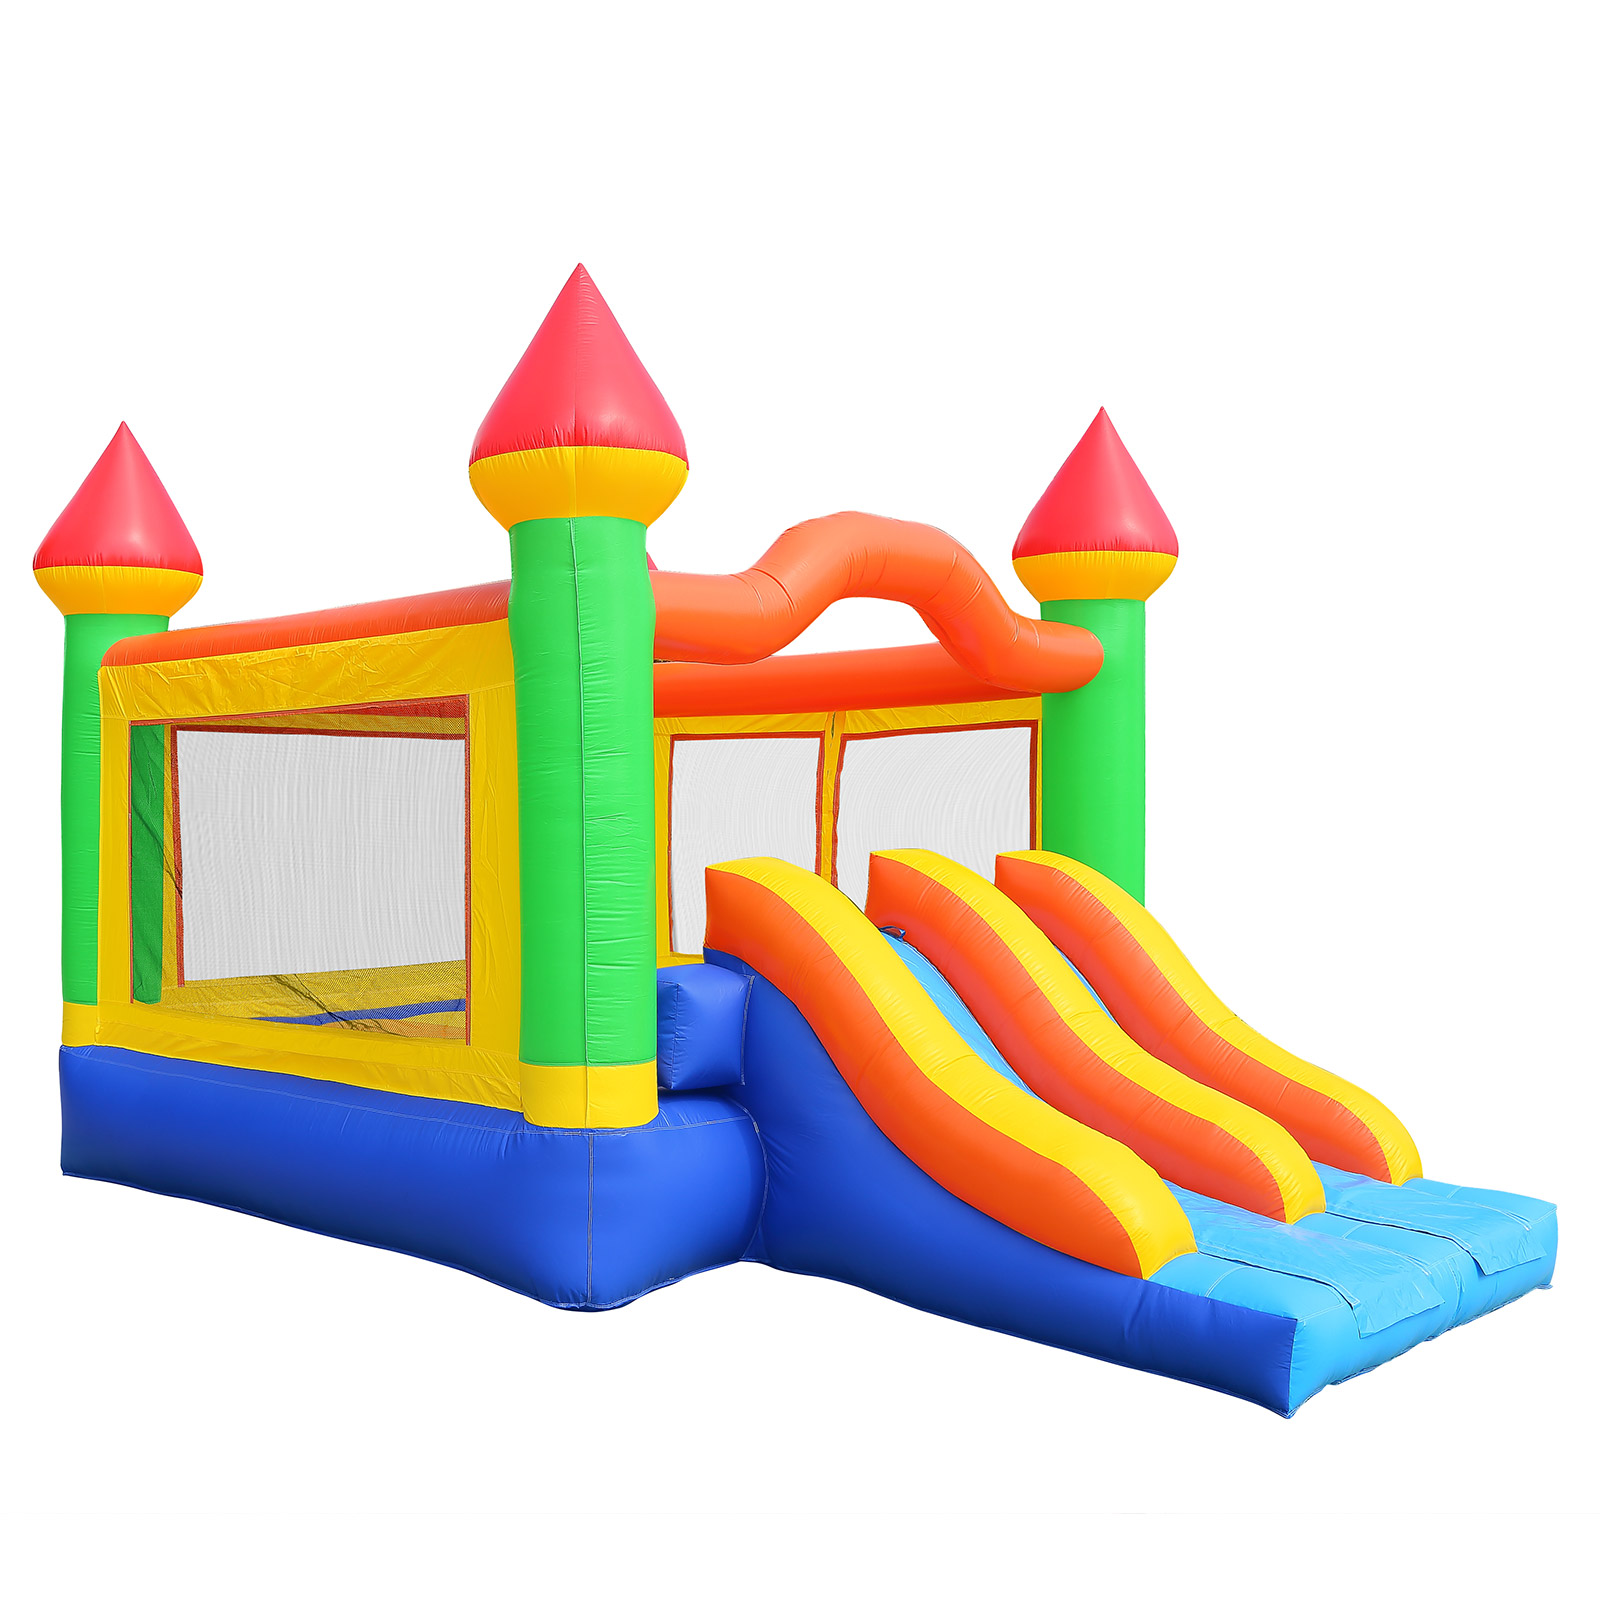 Inflatable HQ Commercial Grade Mega Double Slide Castle Bounce House 100% PVC and Blower